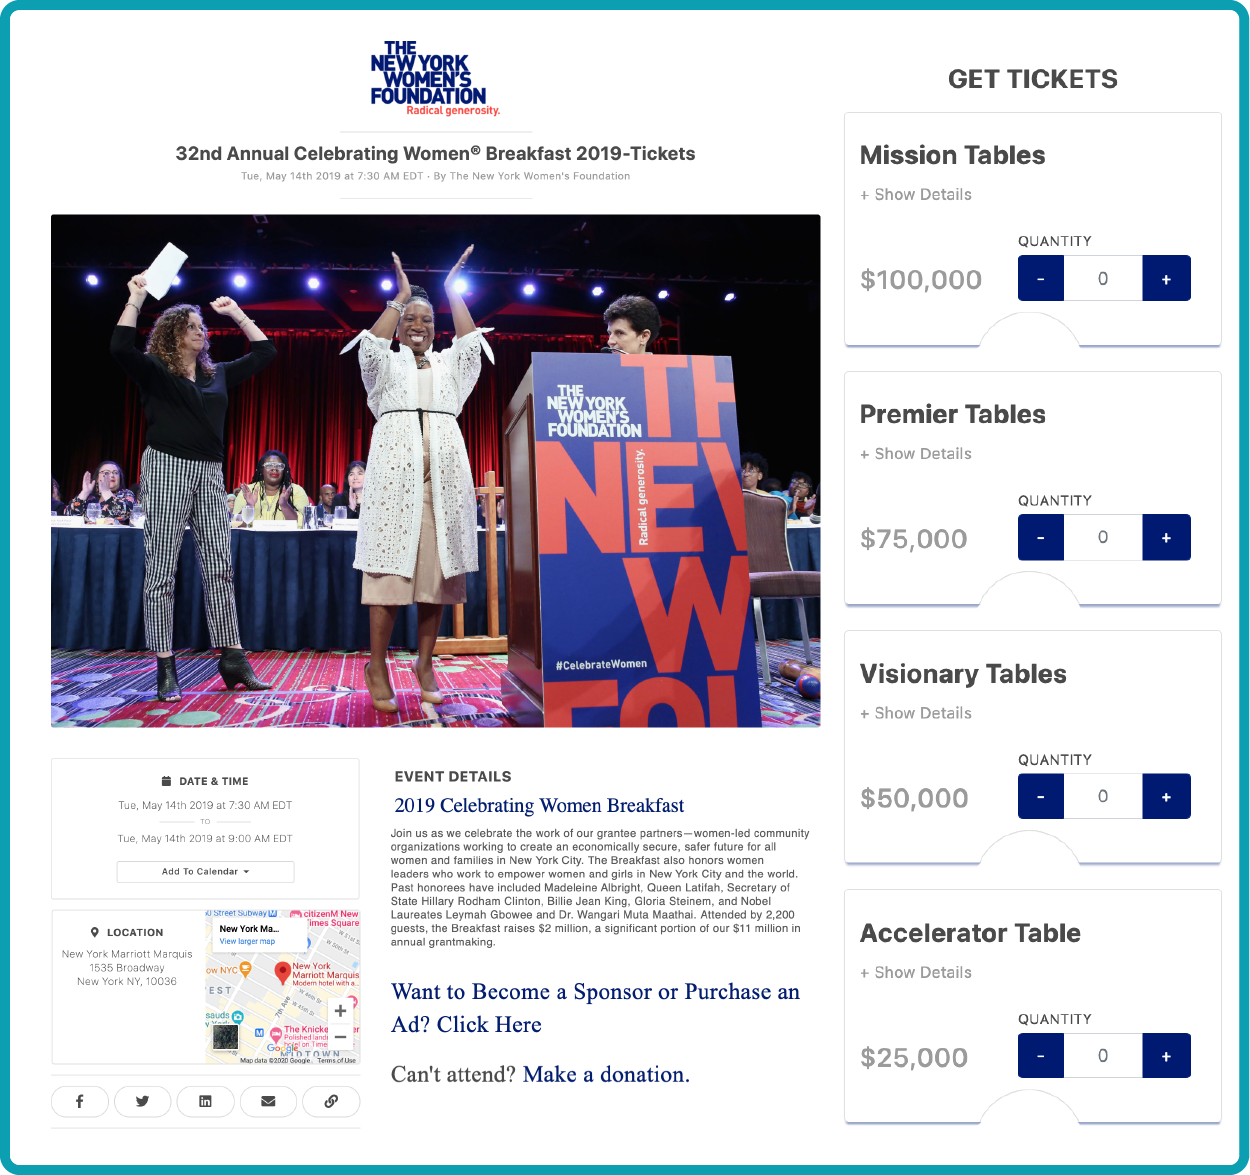 event ticketing page from The New York Women's Foundation Annual Breakfast